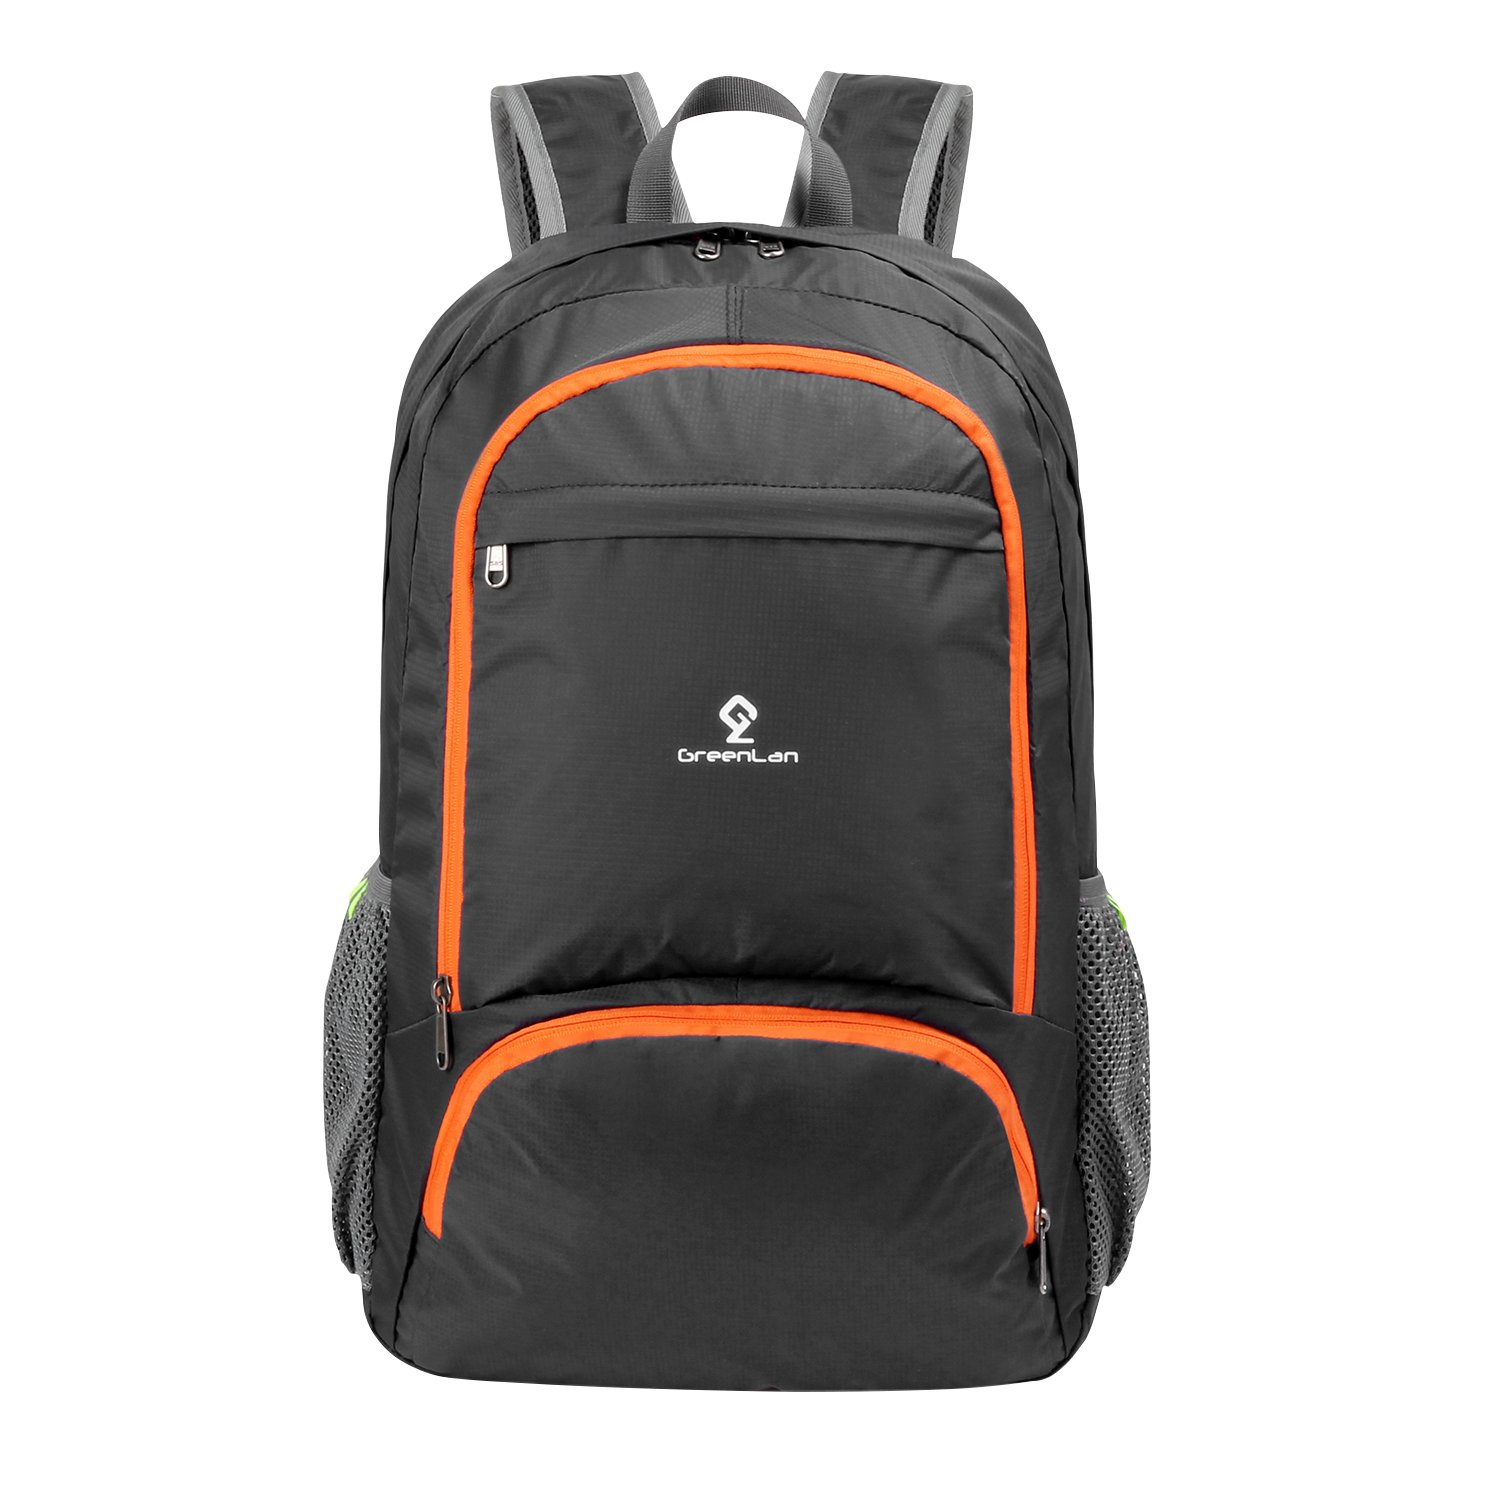 hot sale 2017 Foldable Backpack For Travel b7d30507f61bb